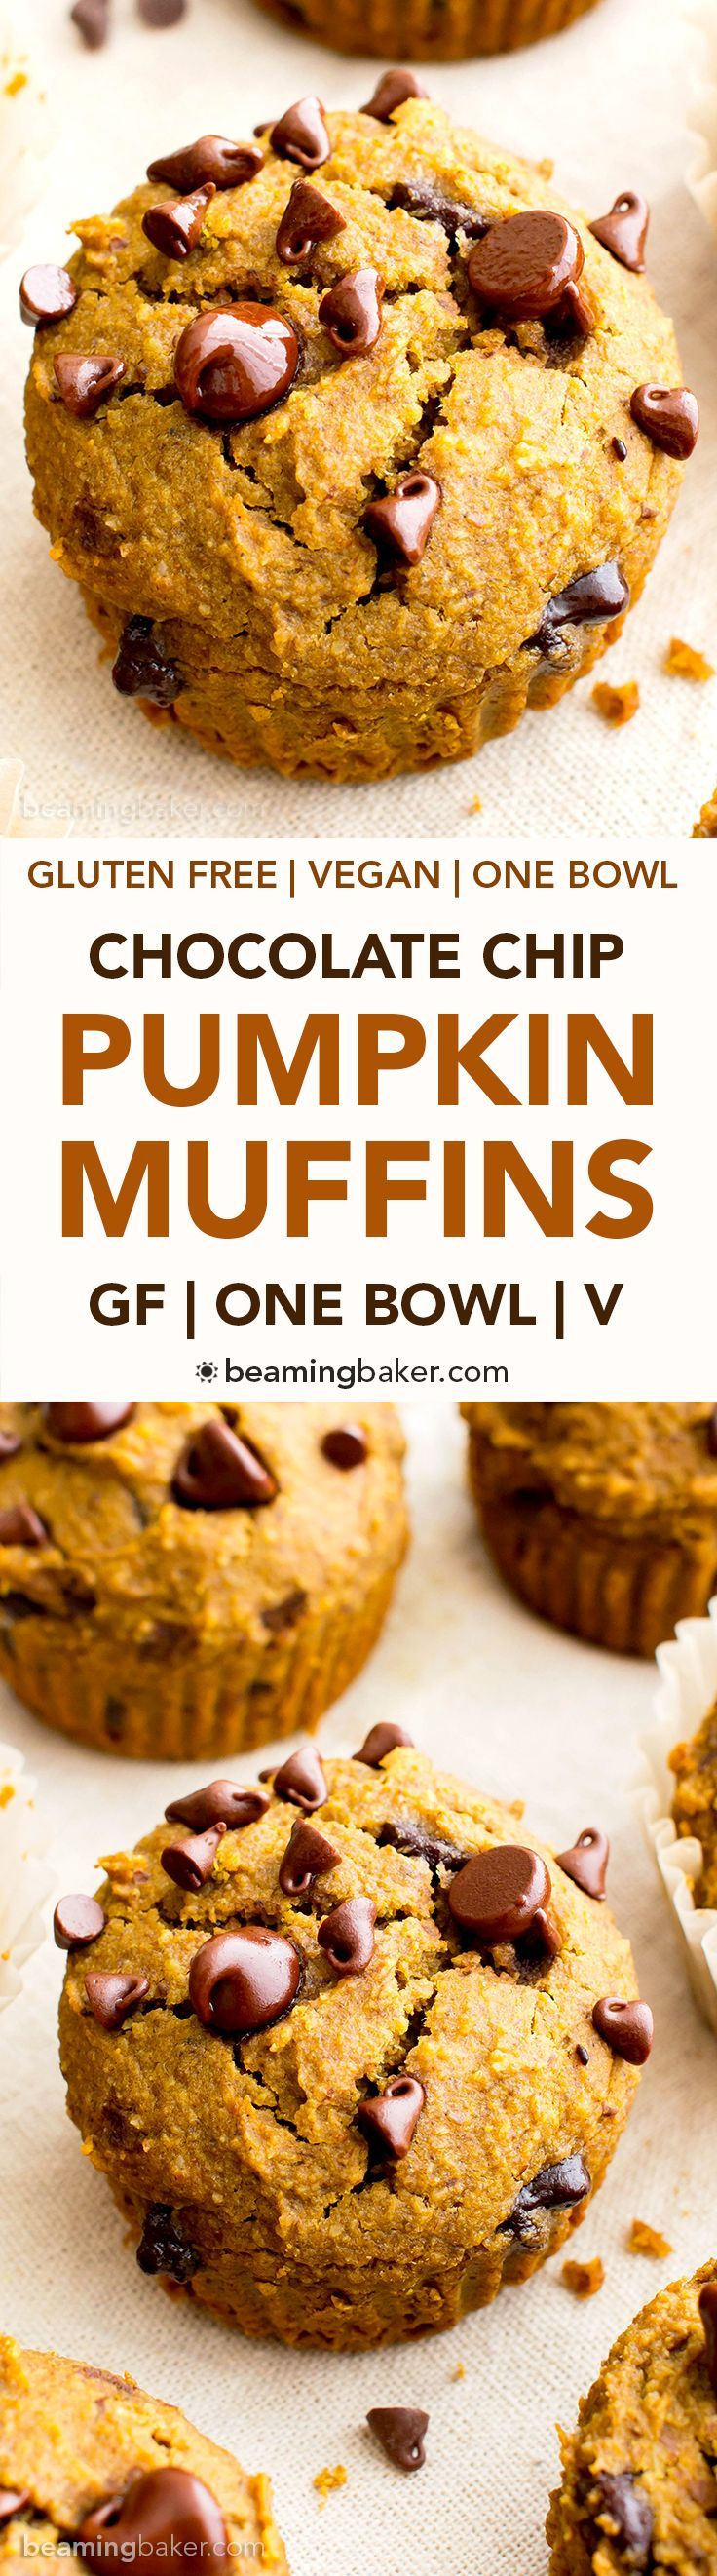 One Bowl Gluten Free Pumpkin Chocolate Chip Muffins (V, GF, DF): a one bowl recipe for perfectly moist pumpkin chocolate chip muffins made with whole ingredients. #Vegan #GlutenFree #DairyFree | BeamingBaker.com